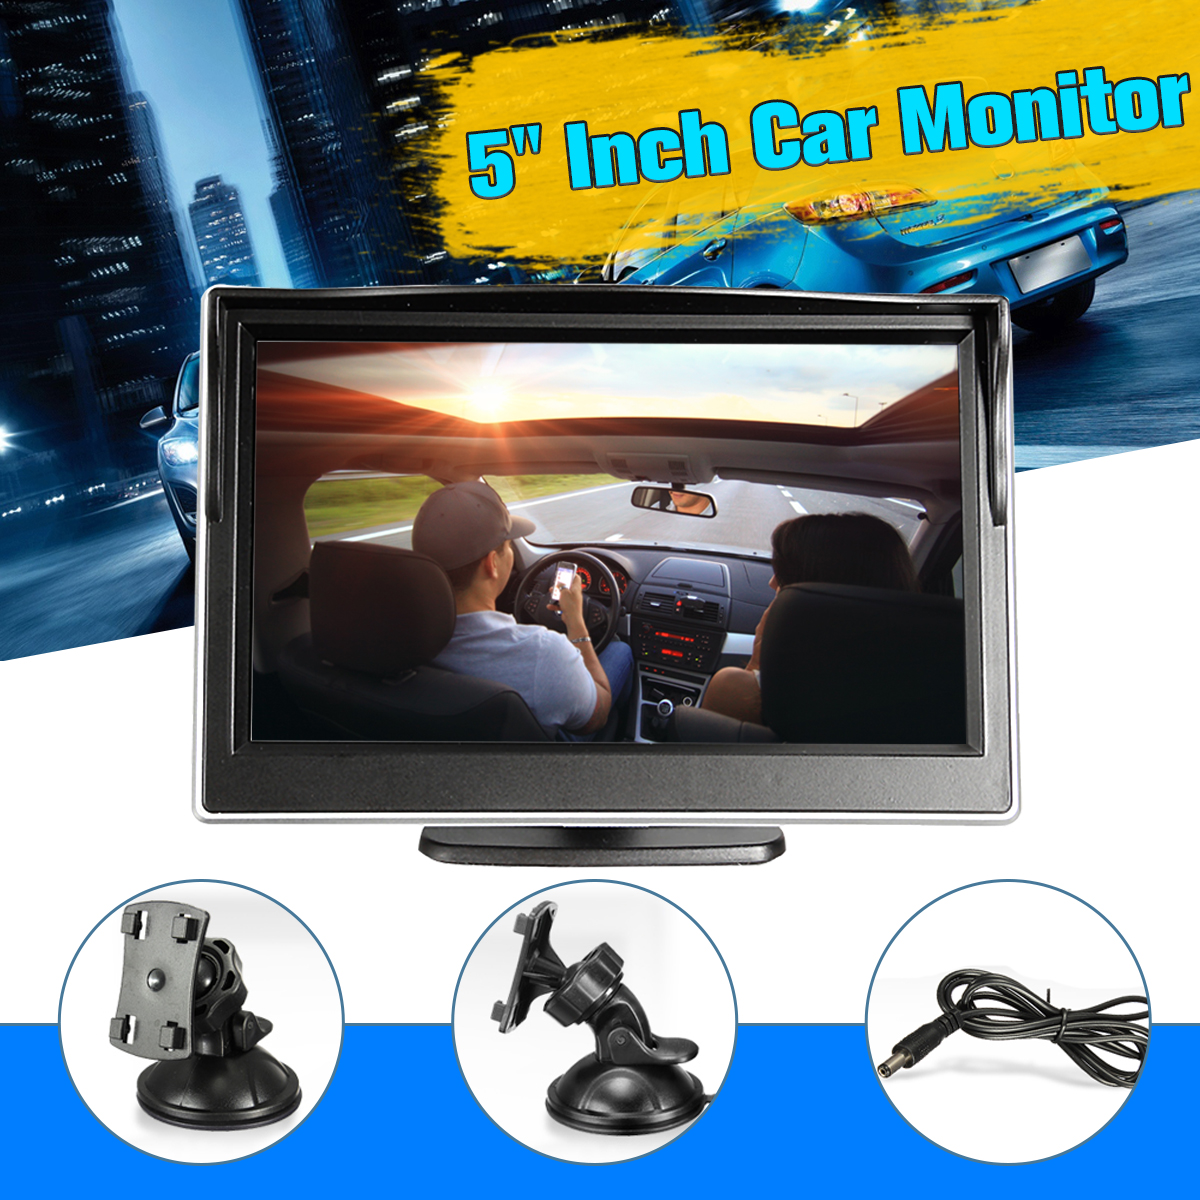 HD 5 Inch Car Rear View System TFT Color LCD Car Reverse Rearview 800*480 Car Security Monitor Parking Backup Camera DVD 12V high resolution 5 colorful screen tft lcd car rearview mirror monitor 800 480 resolution dc 12v car monitor for dvd camera vcr